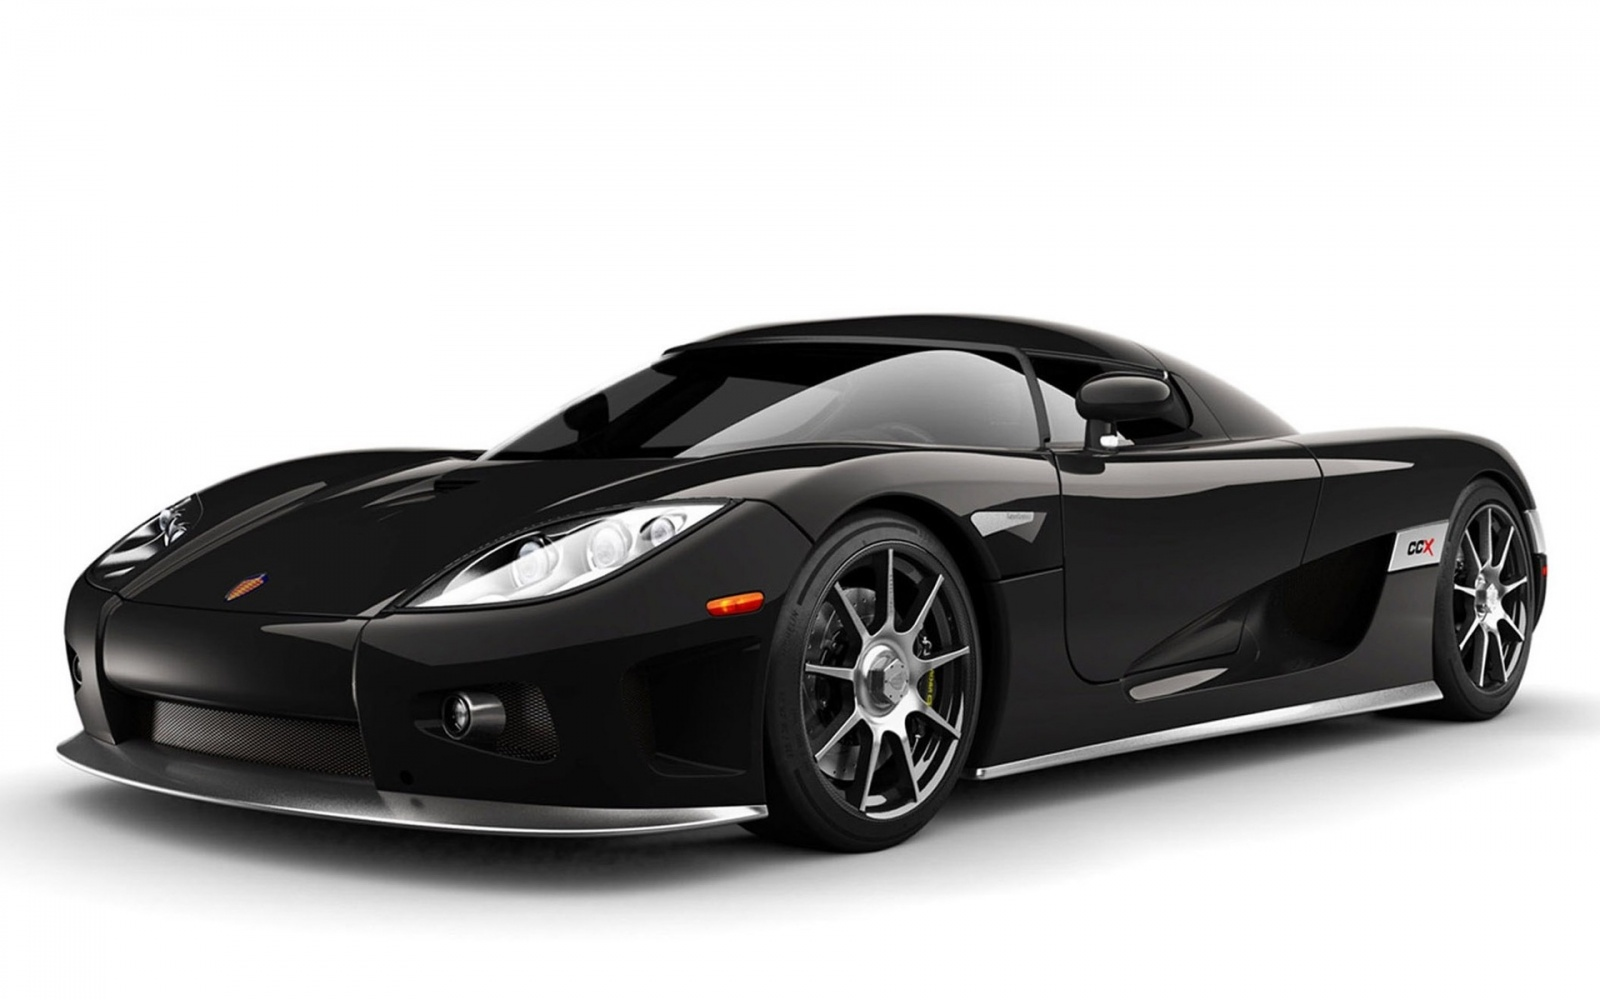 Fast Car PNG Black And White - 147651